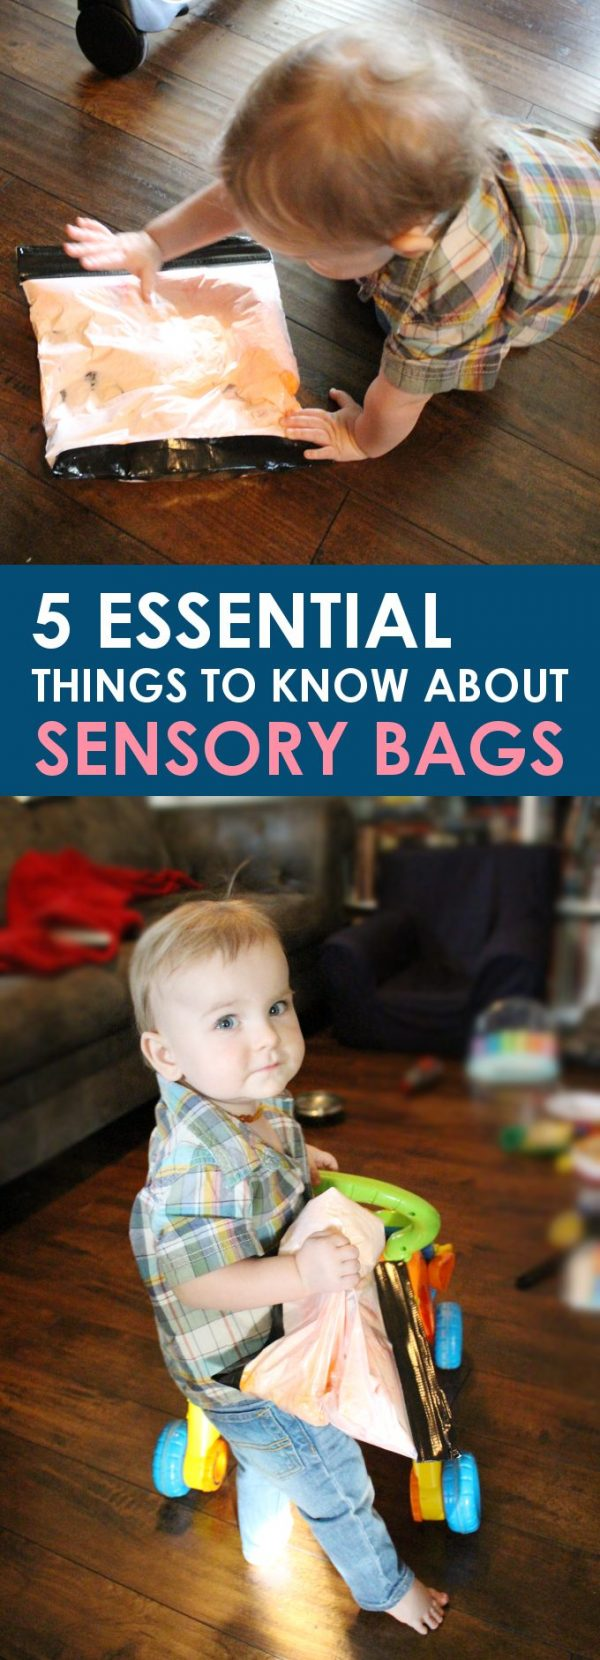 sensory bag promotional image featured a toddler activity for a rainy day - a bag filled with shaving cream!